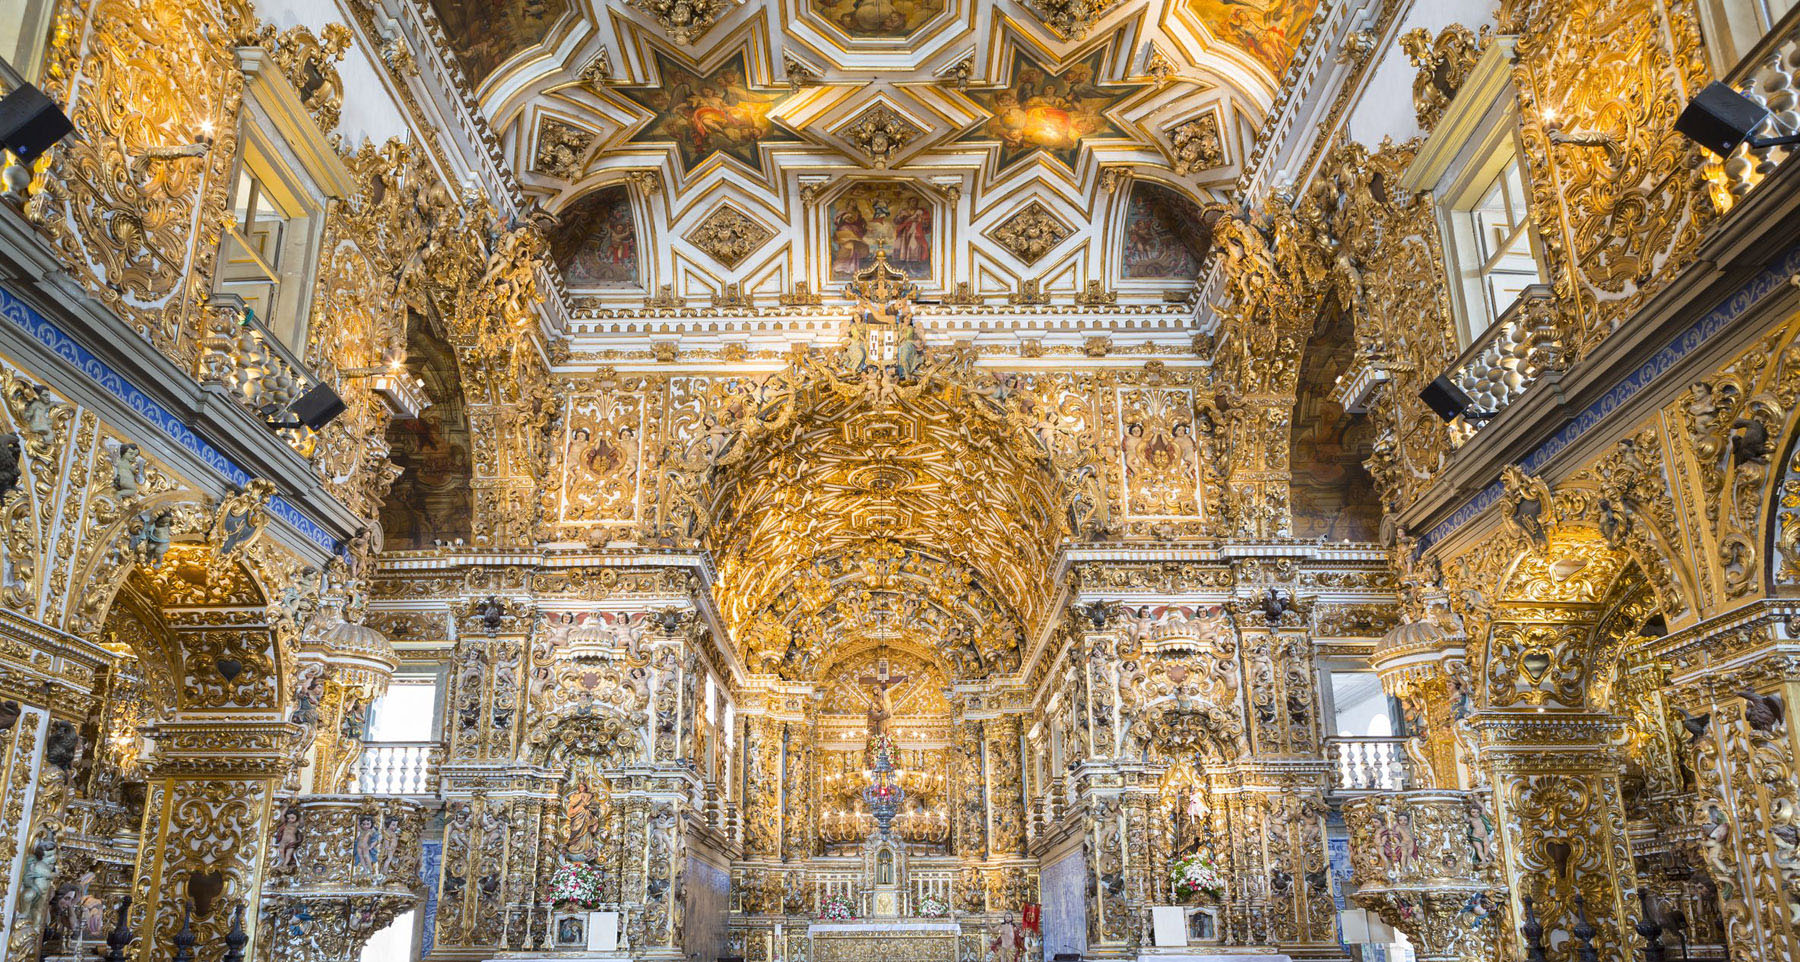 The ornate gold interior of the São Francisco Church and Convent in Salvador De Bahia